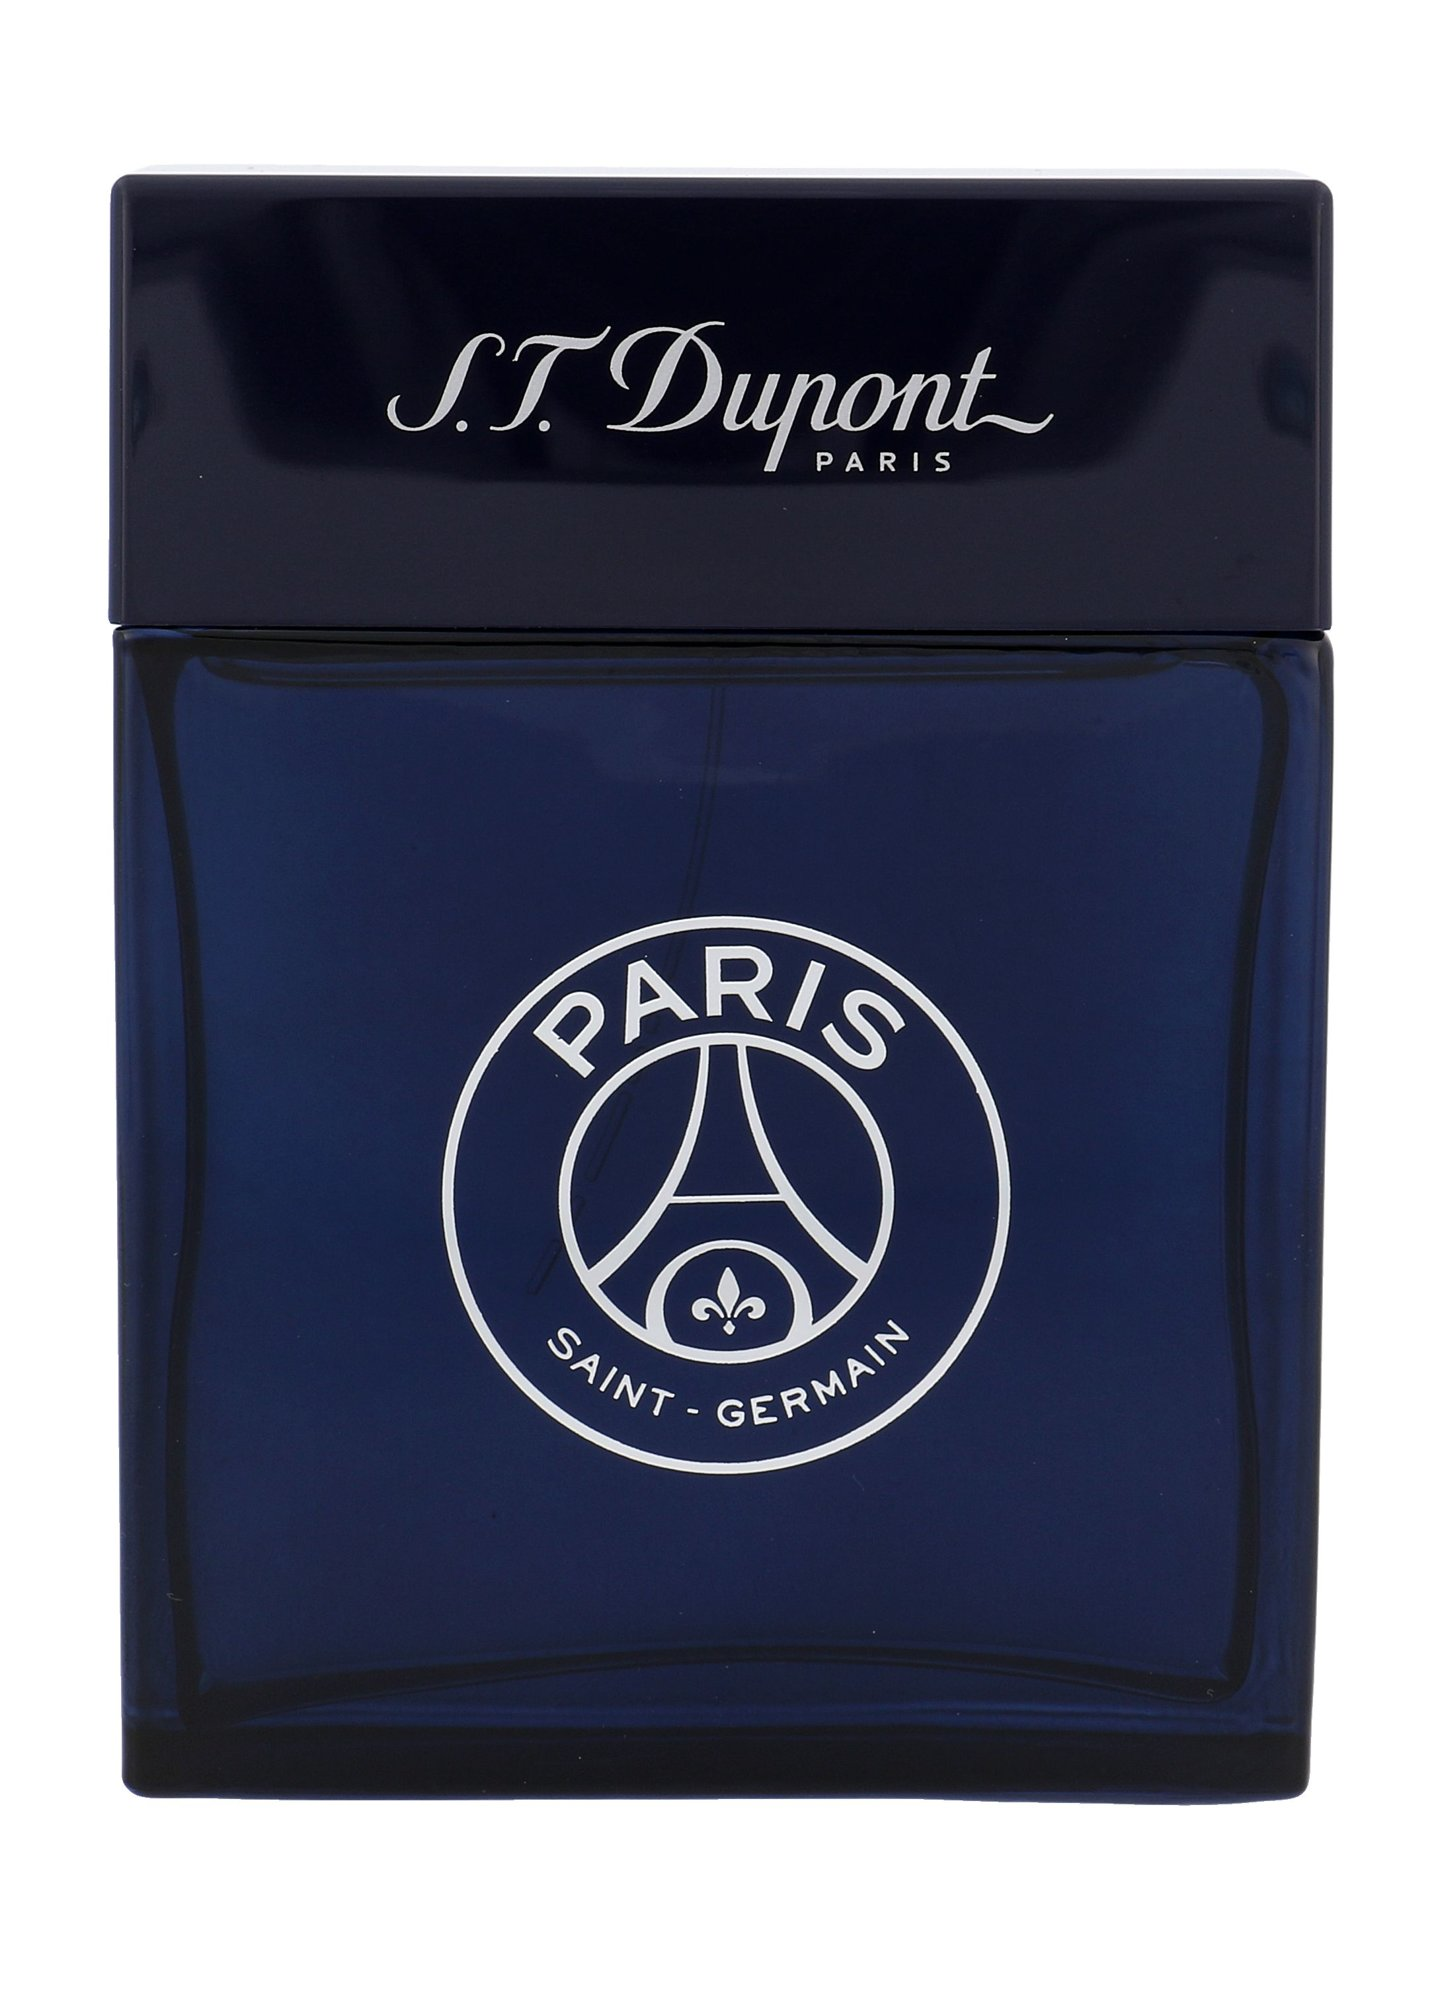 S.T. Dupont Parfum Officiel du Paris Saint-Germain EDT 100ml